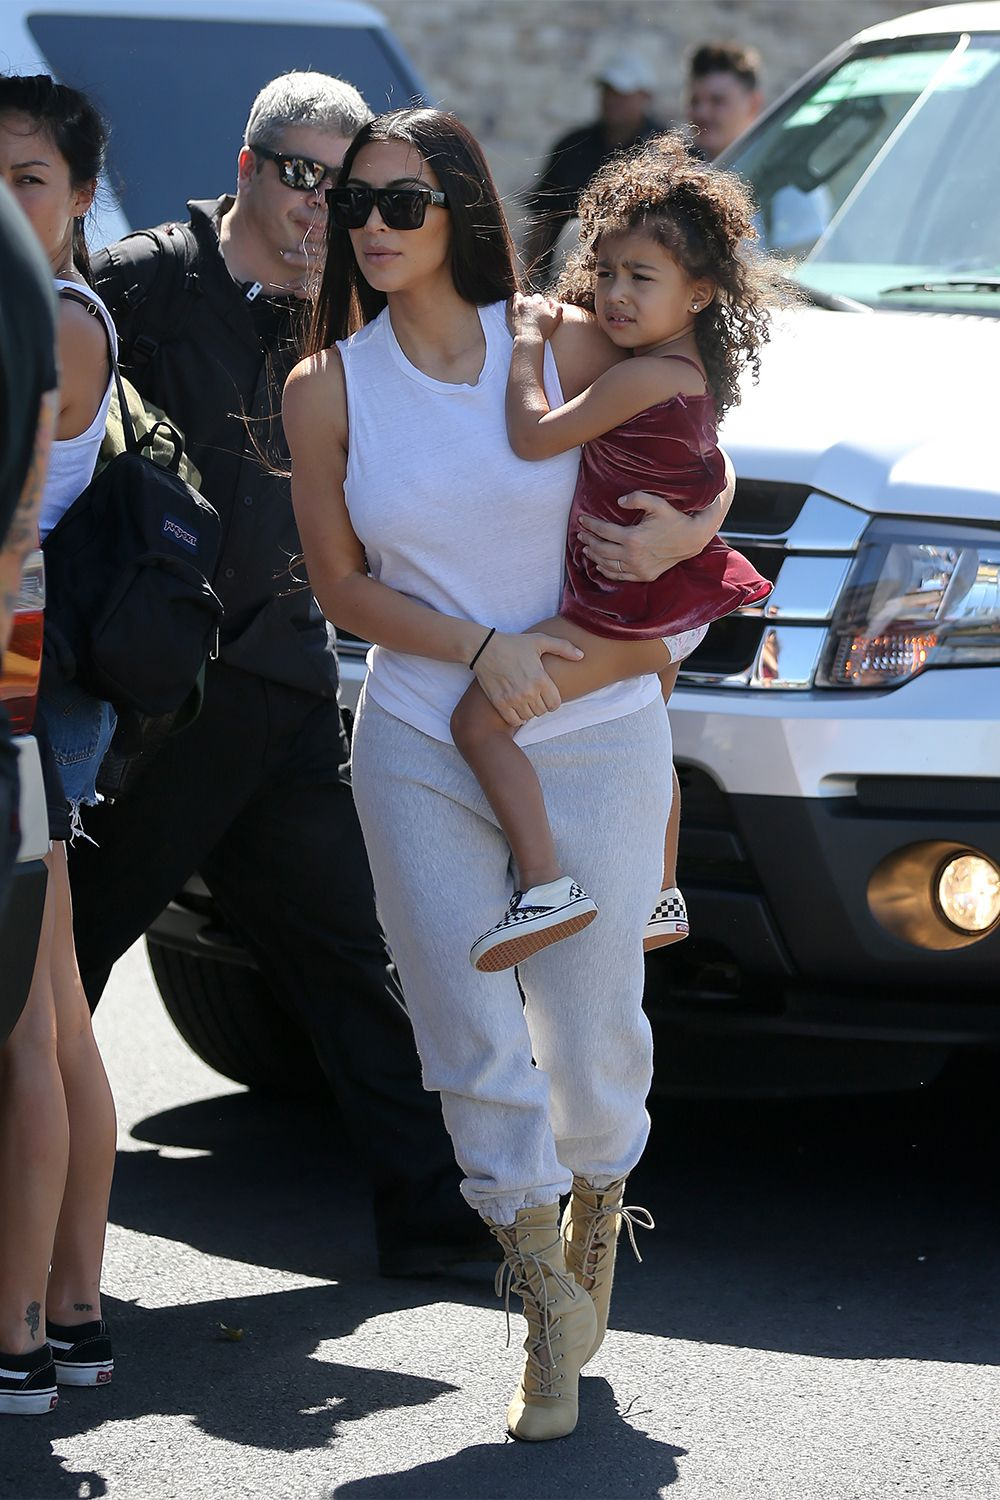 To acquire Wests north best looks in pictures trends